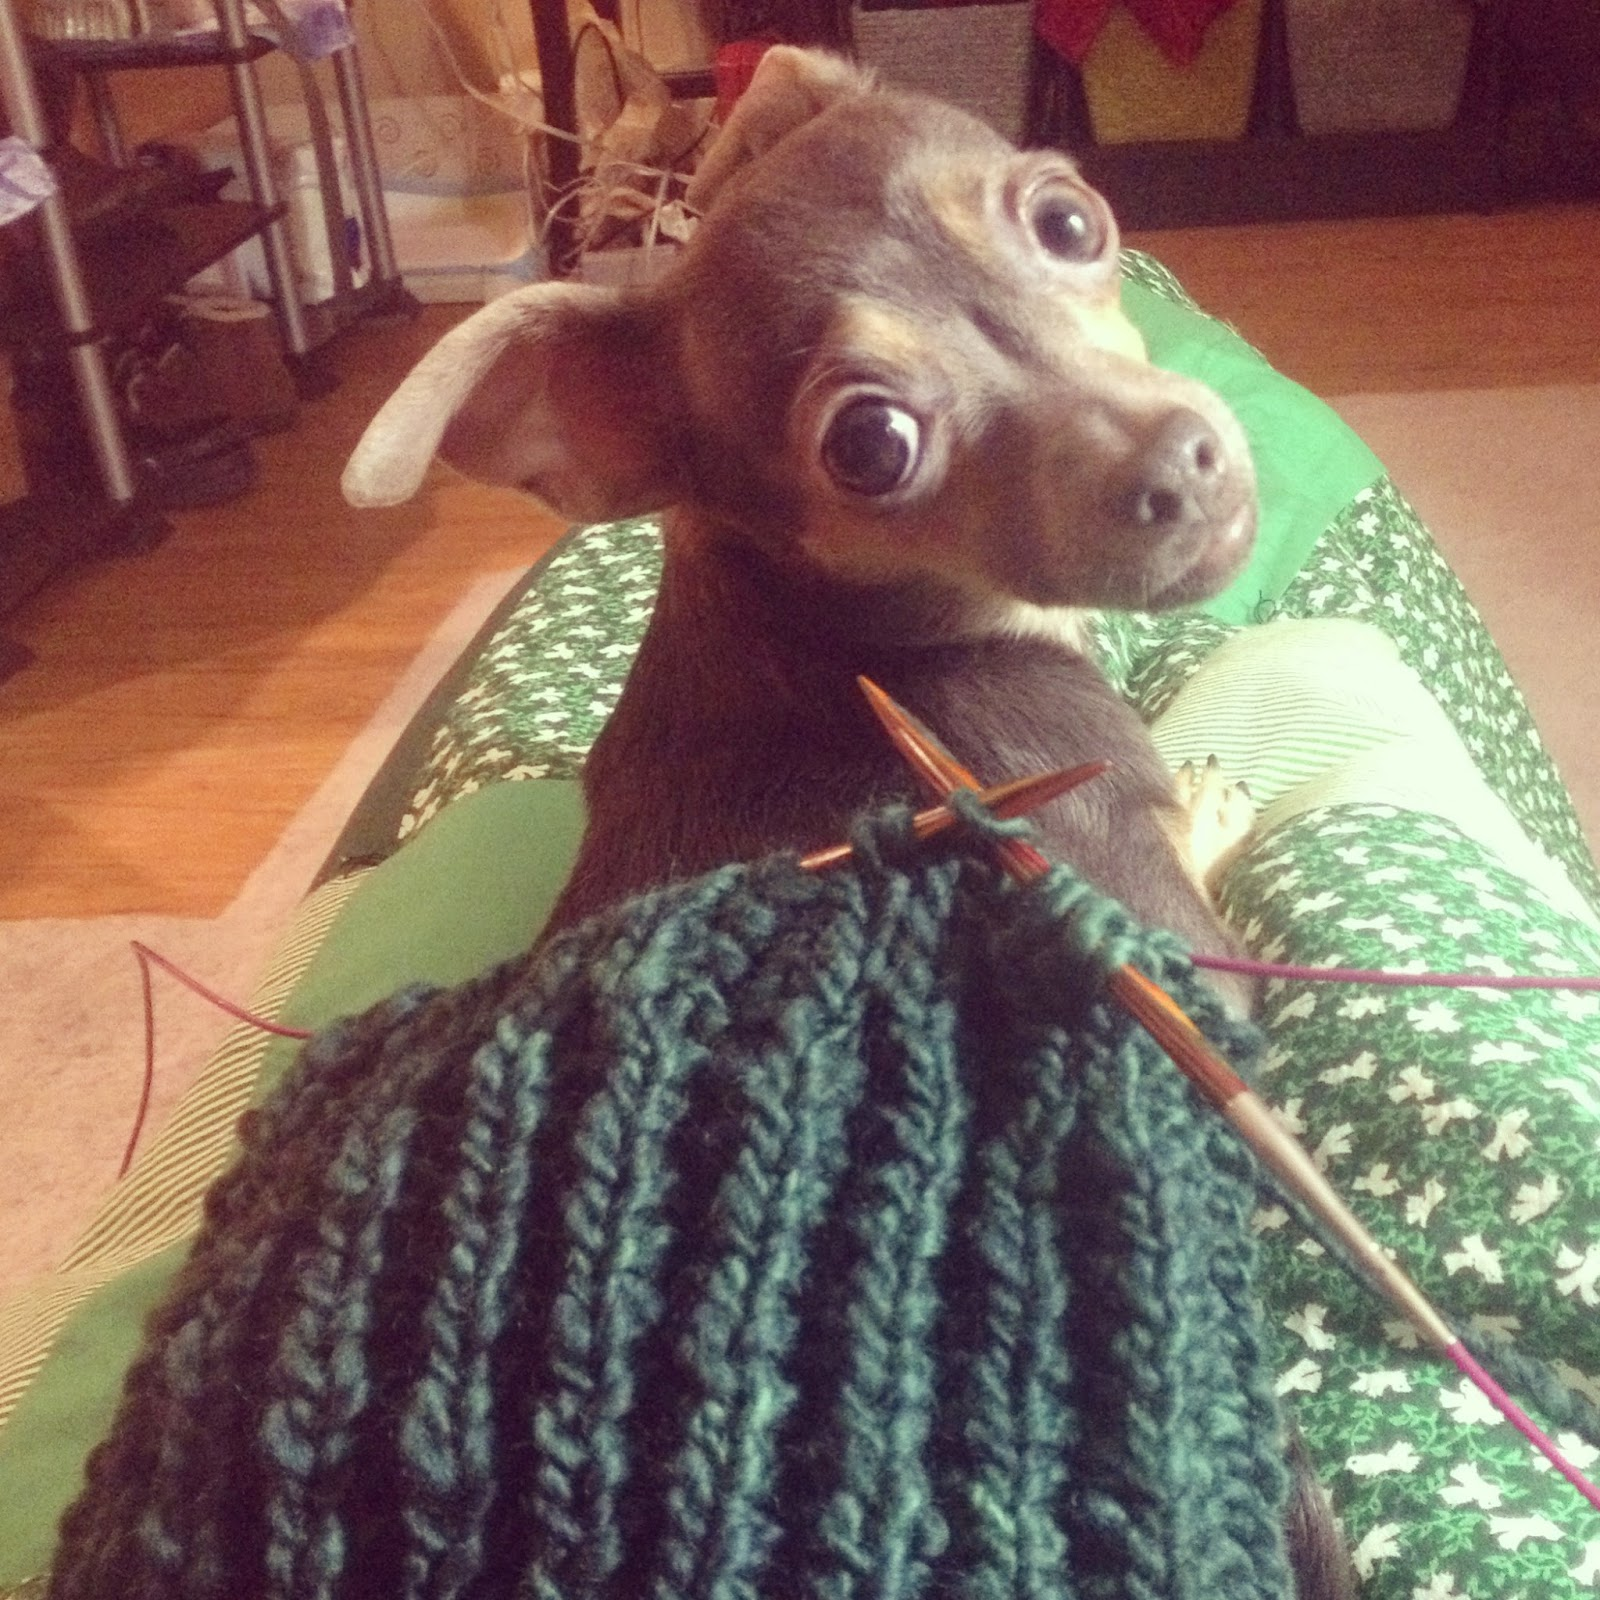 Knitting Helper - She Knits in Pearls